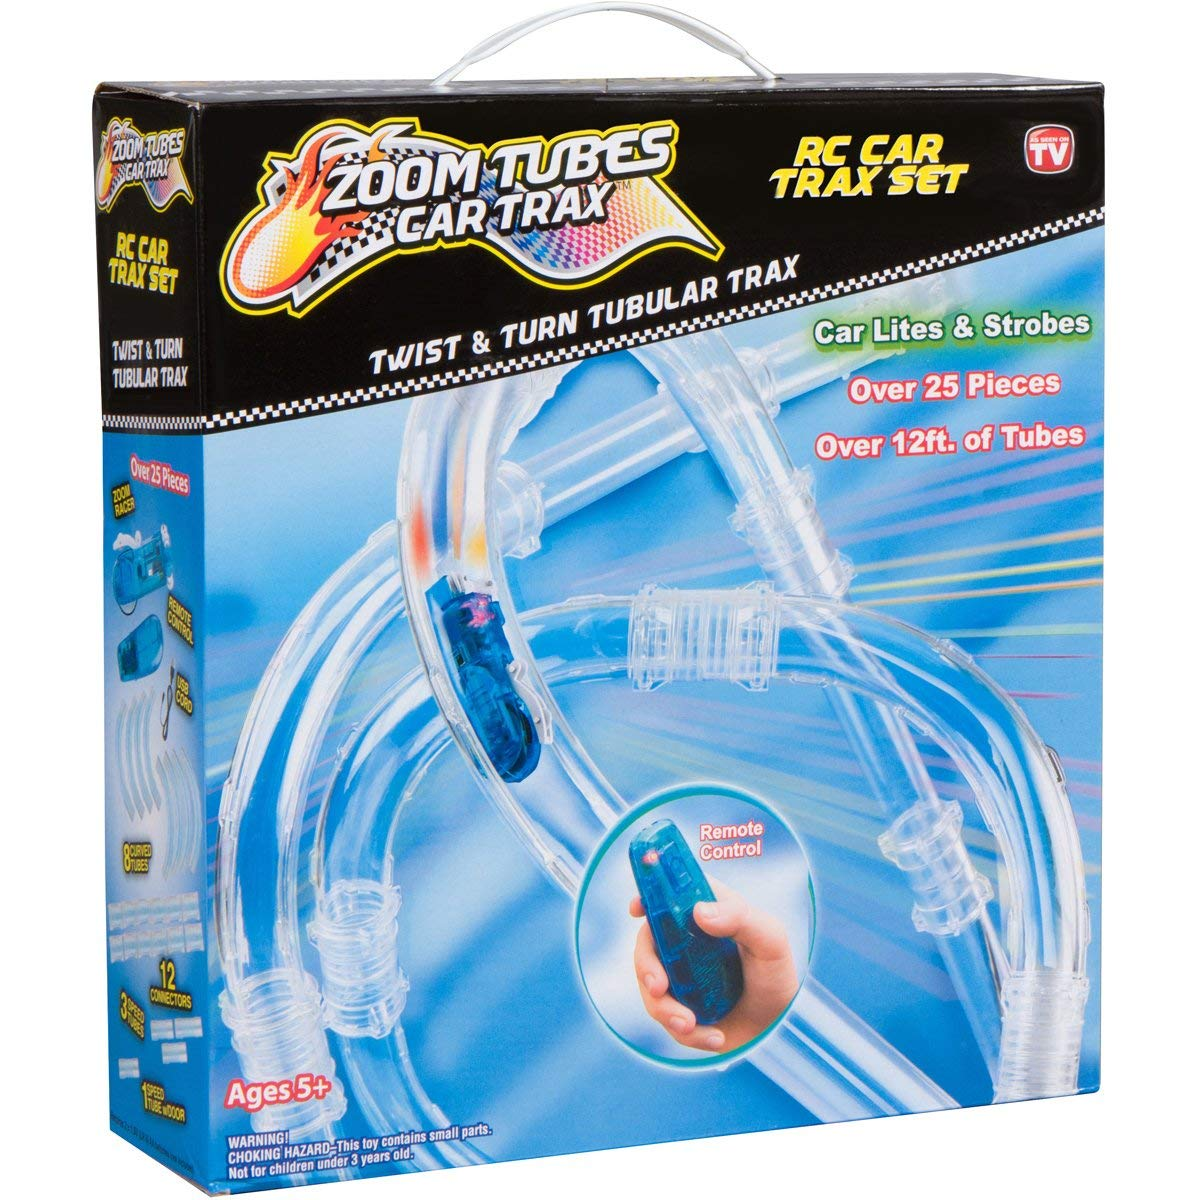 Zoom Tubes Car Trax – As Seen On TV Hot 10